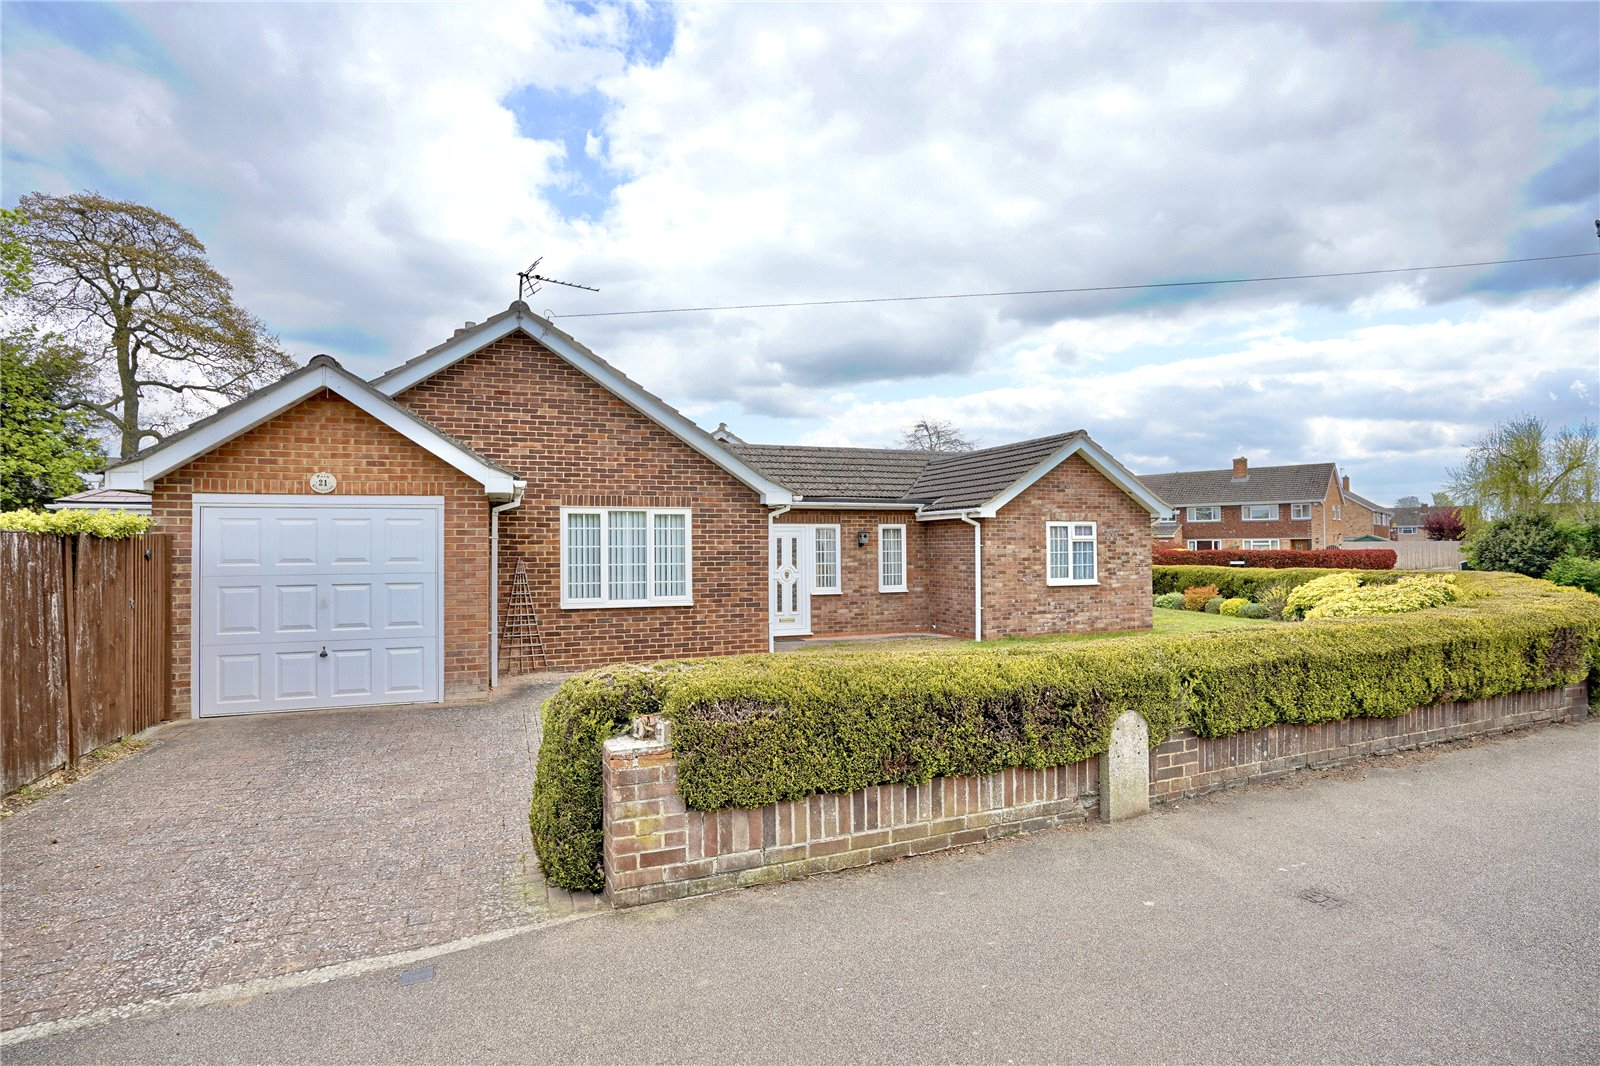 2 bed bungalow for sale in Park Crescent, Little Paxton - Property Image 1